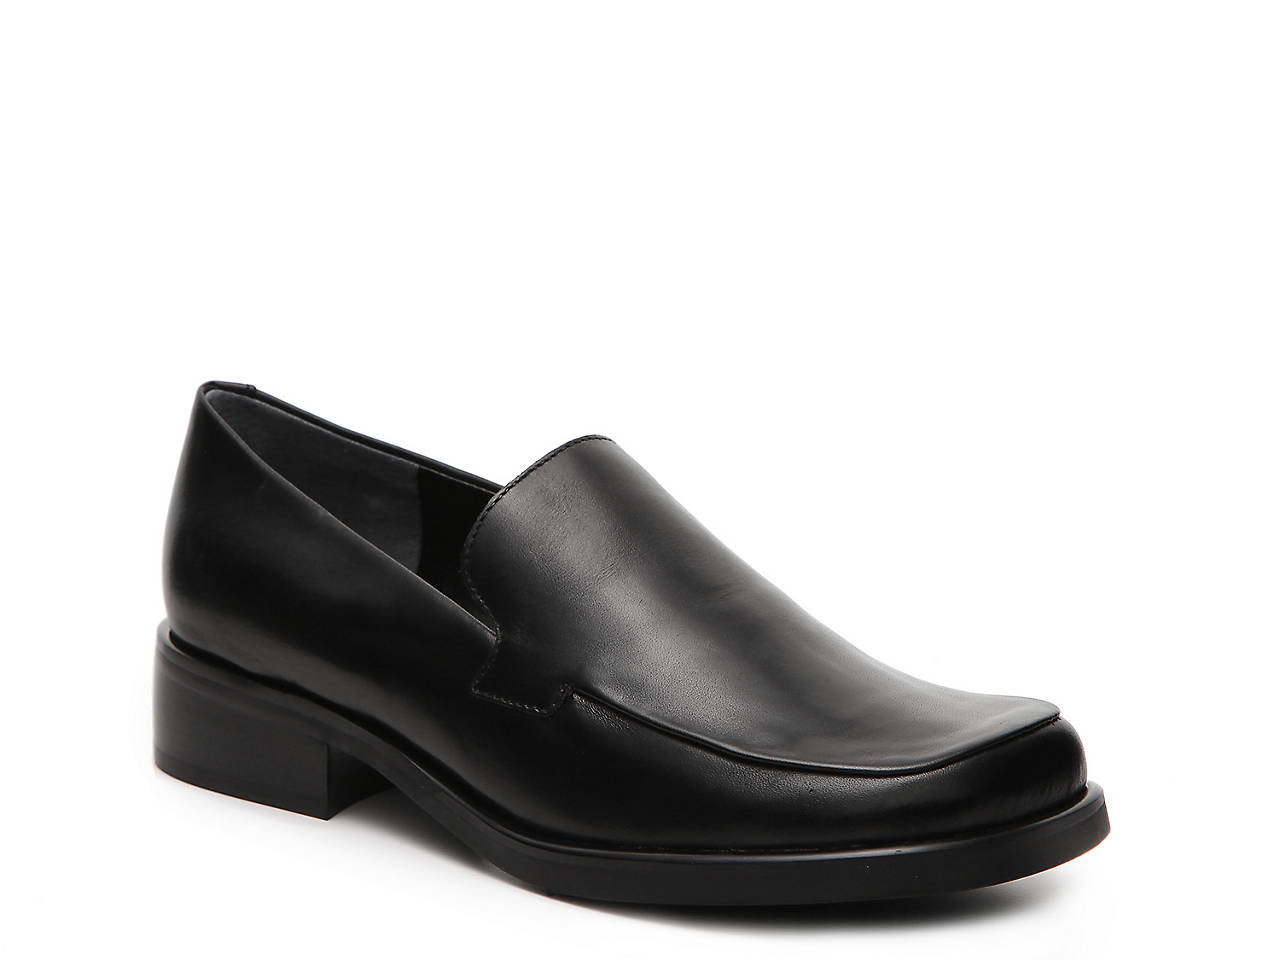 3601fa6260a Franco Sarto Bocca Loafer Women s Shoes